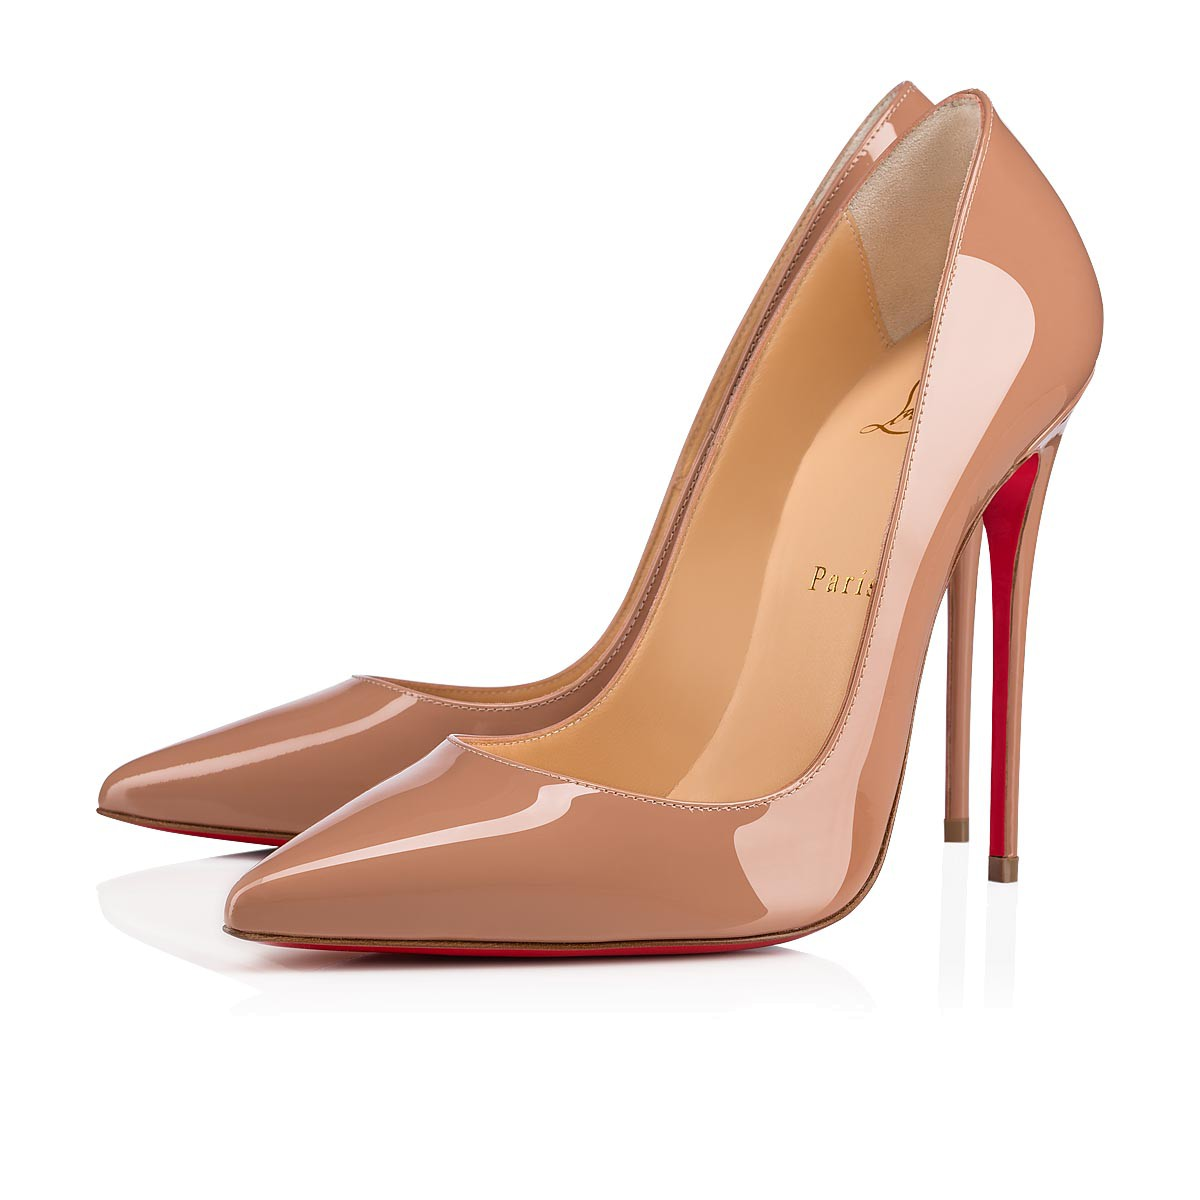 c8b830951d1 So Kate 120 Nude Patent Leather - Women Shoes - Christian Louboutin